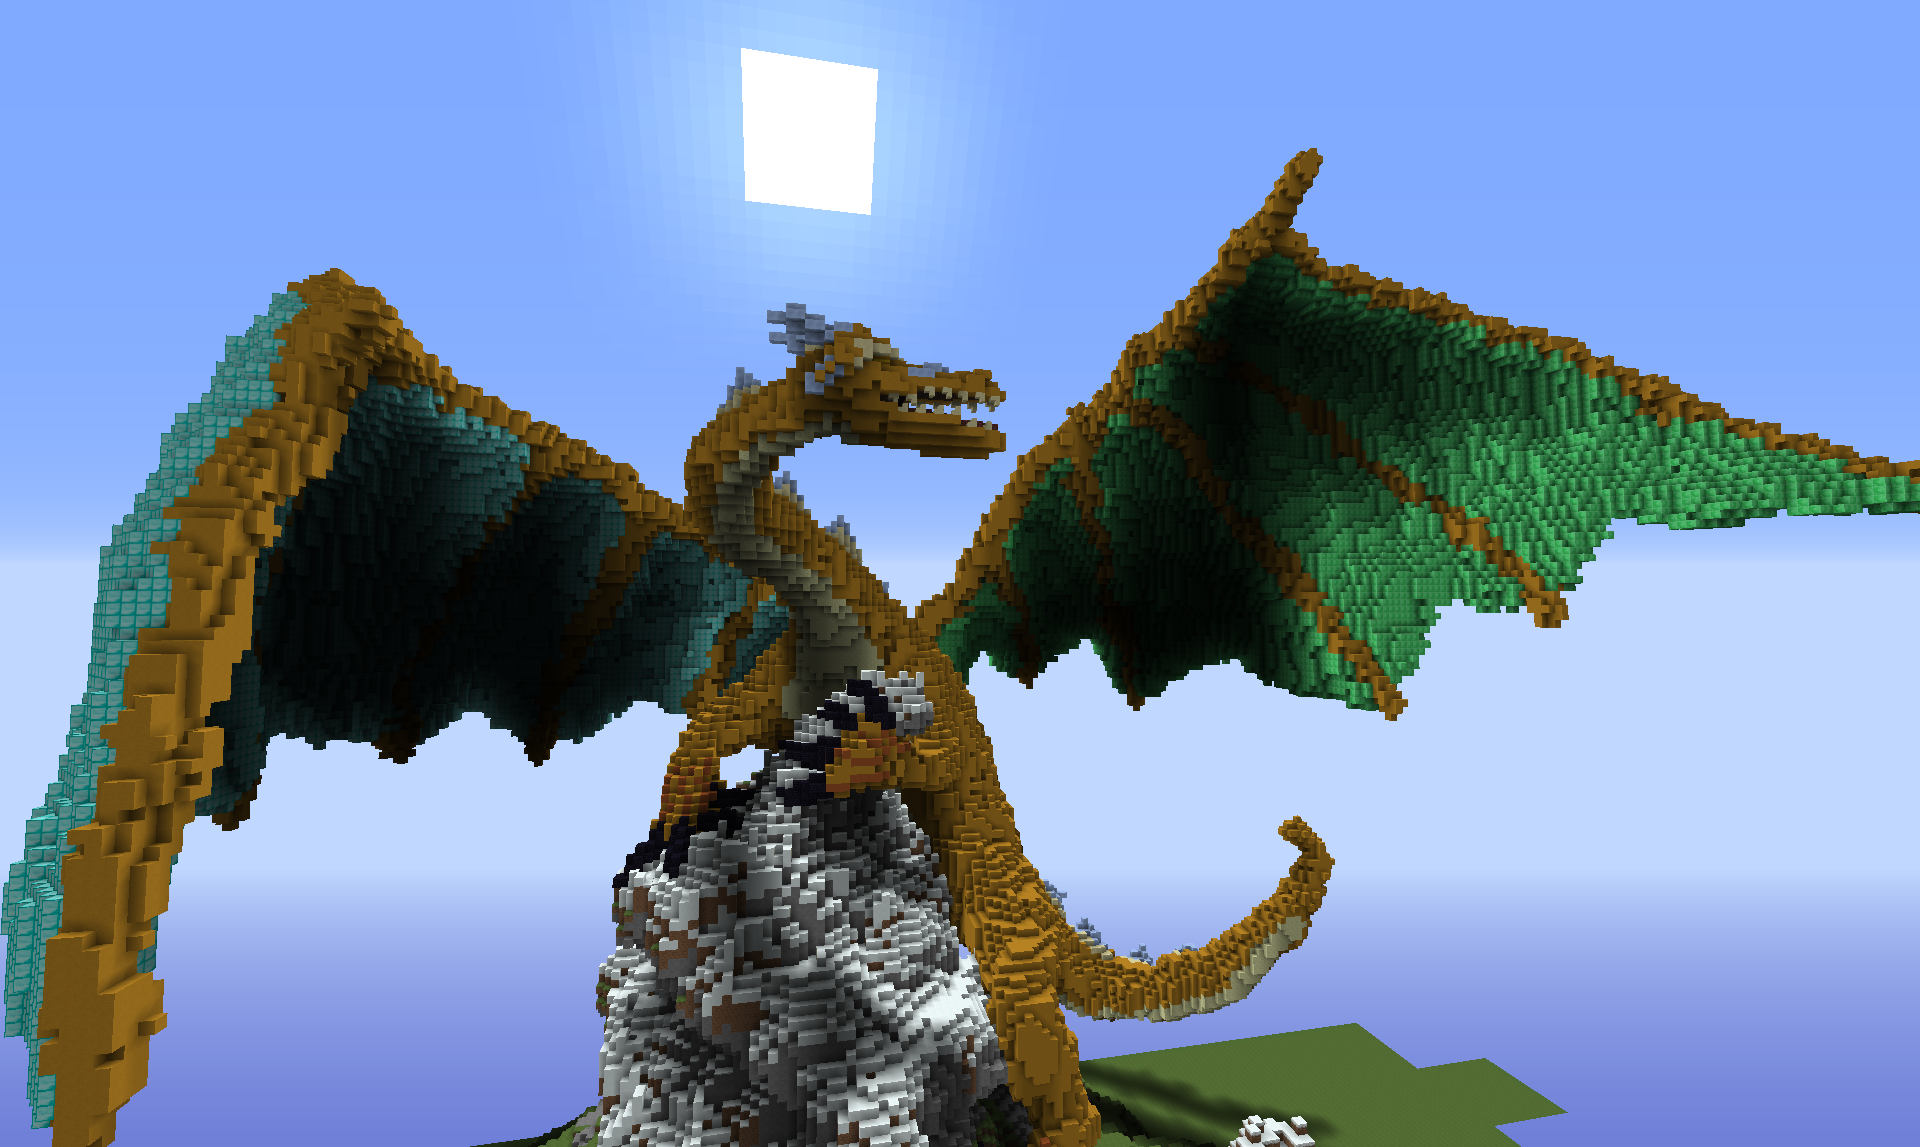 Massive minecraft dragon build google search finn - Construcciones coolbuild ...